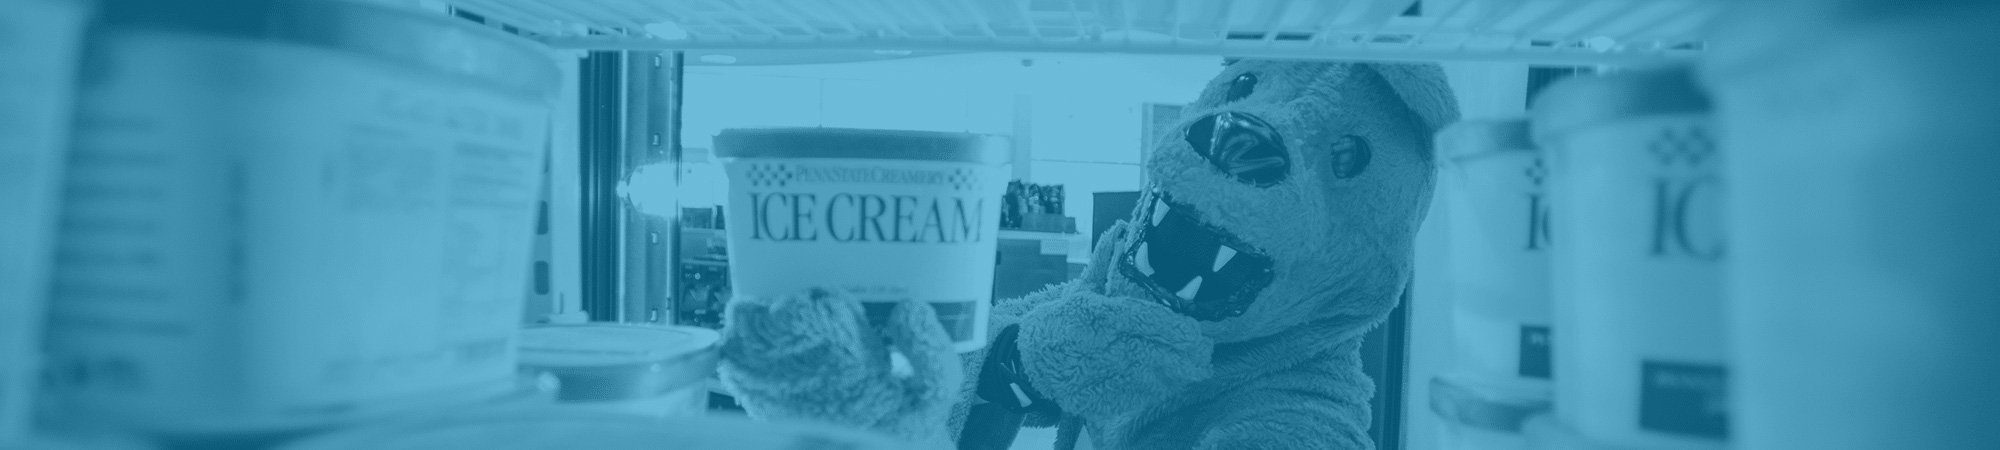 Nittany Lion selecting ice cream from cooler